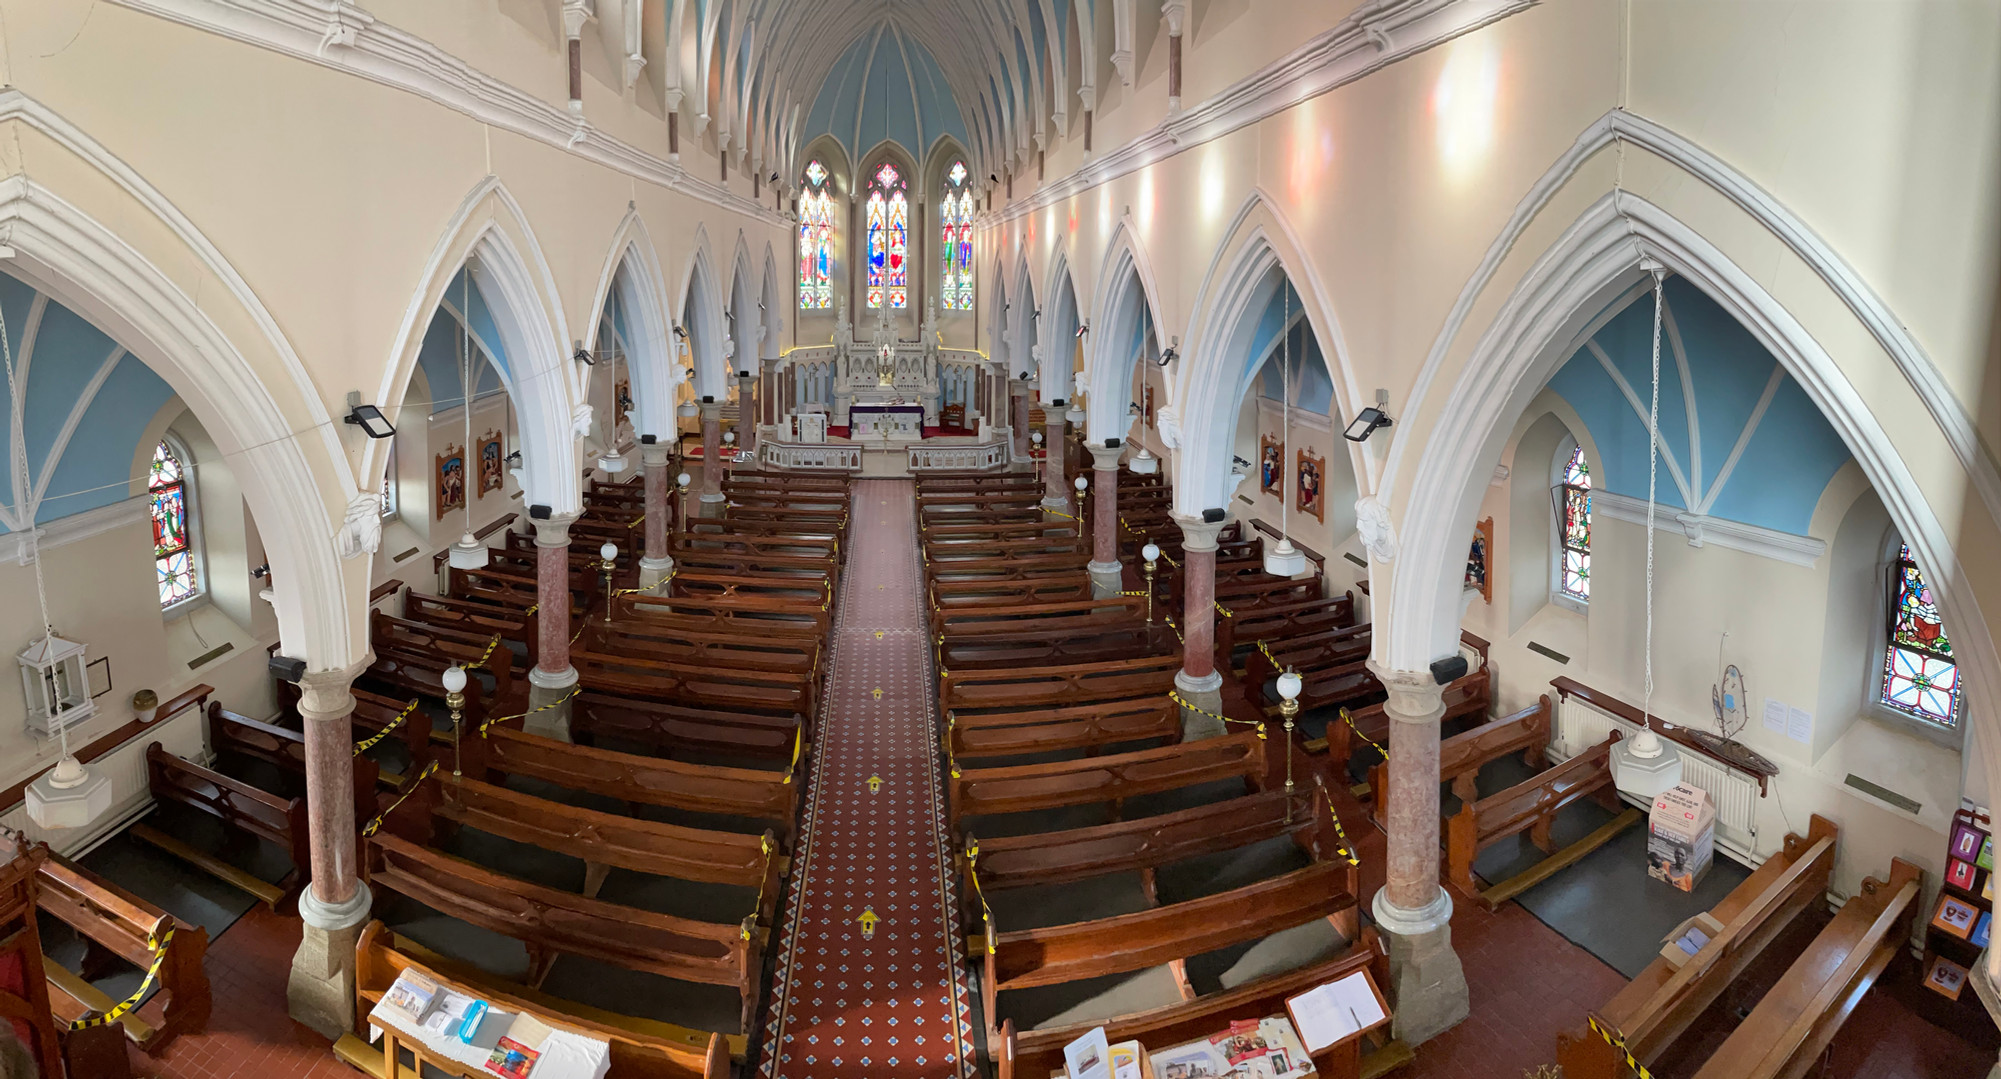 A panorama of the inside of the church.